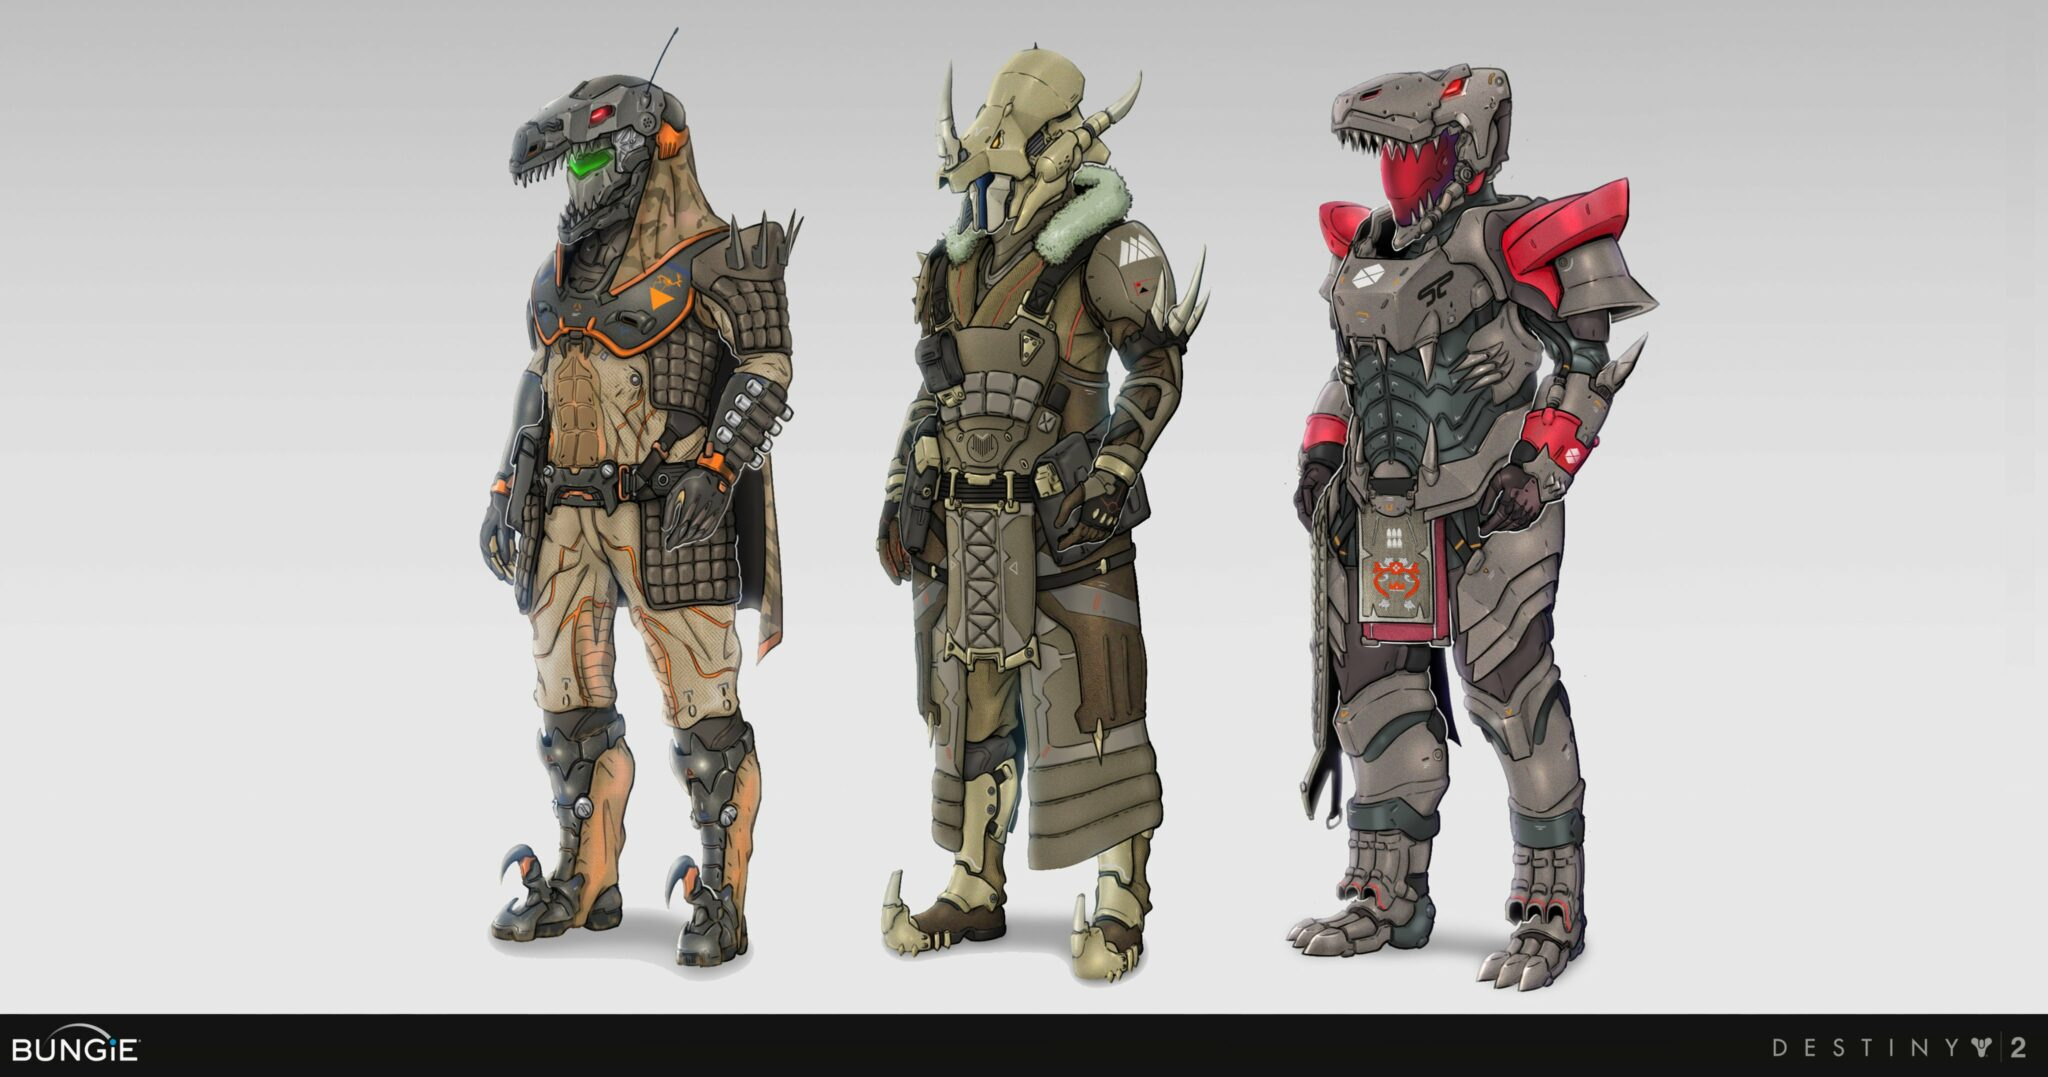 Destiny 2 Dinosaur Armor Vs. Monster Armor, Which One You Vote For?